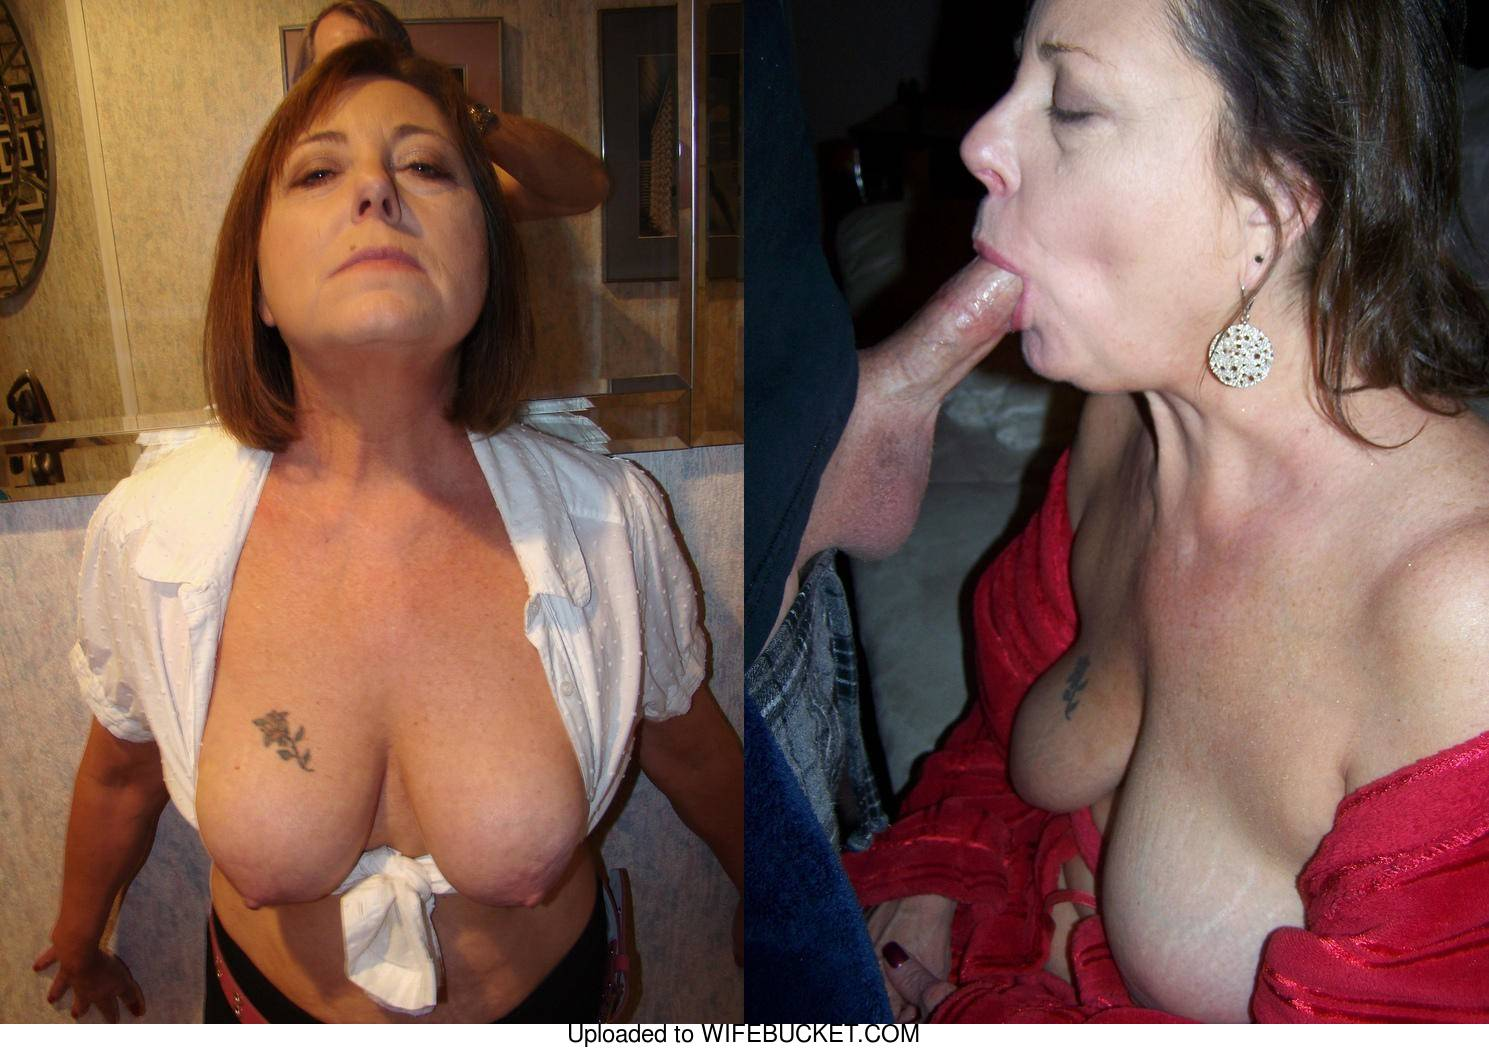 cuckolding wife before-after porn and blowjobs